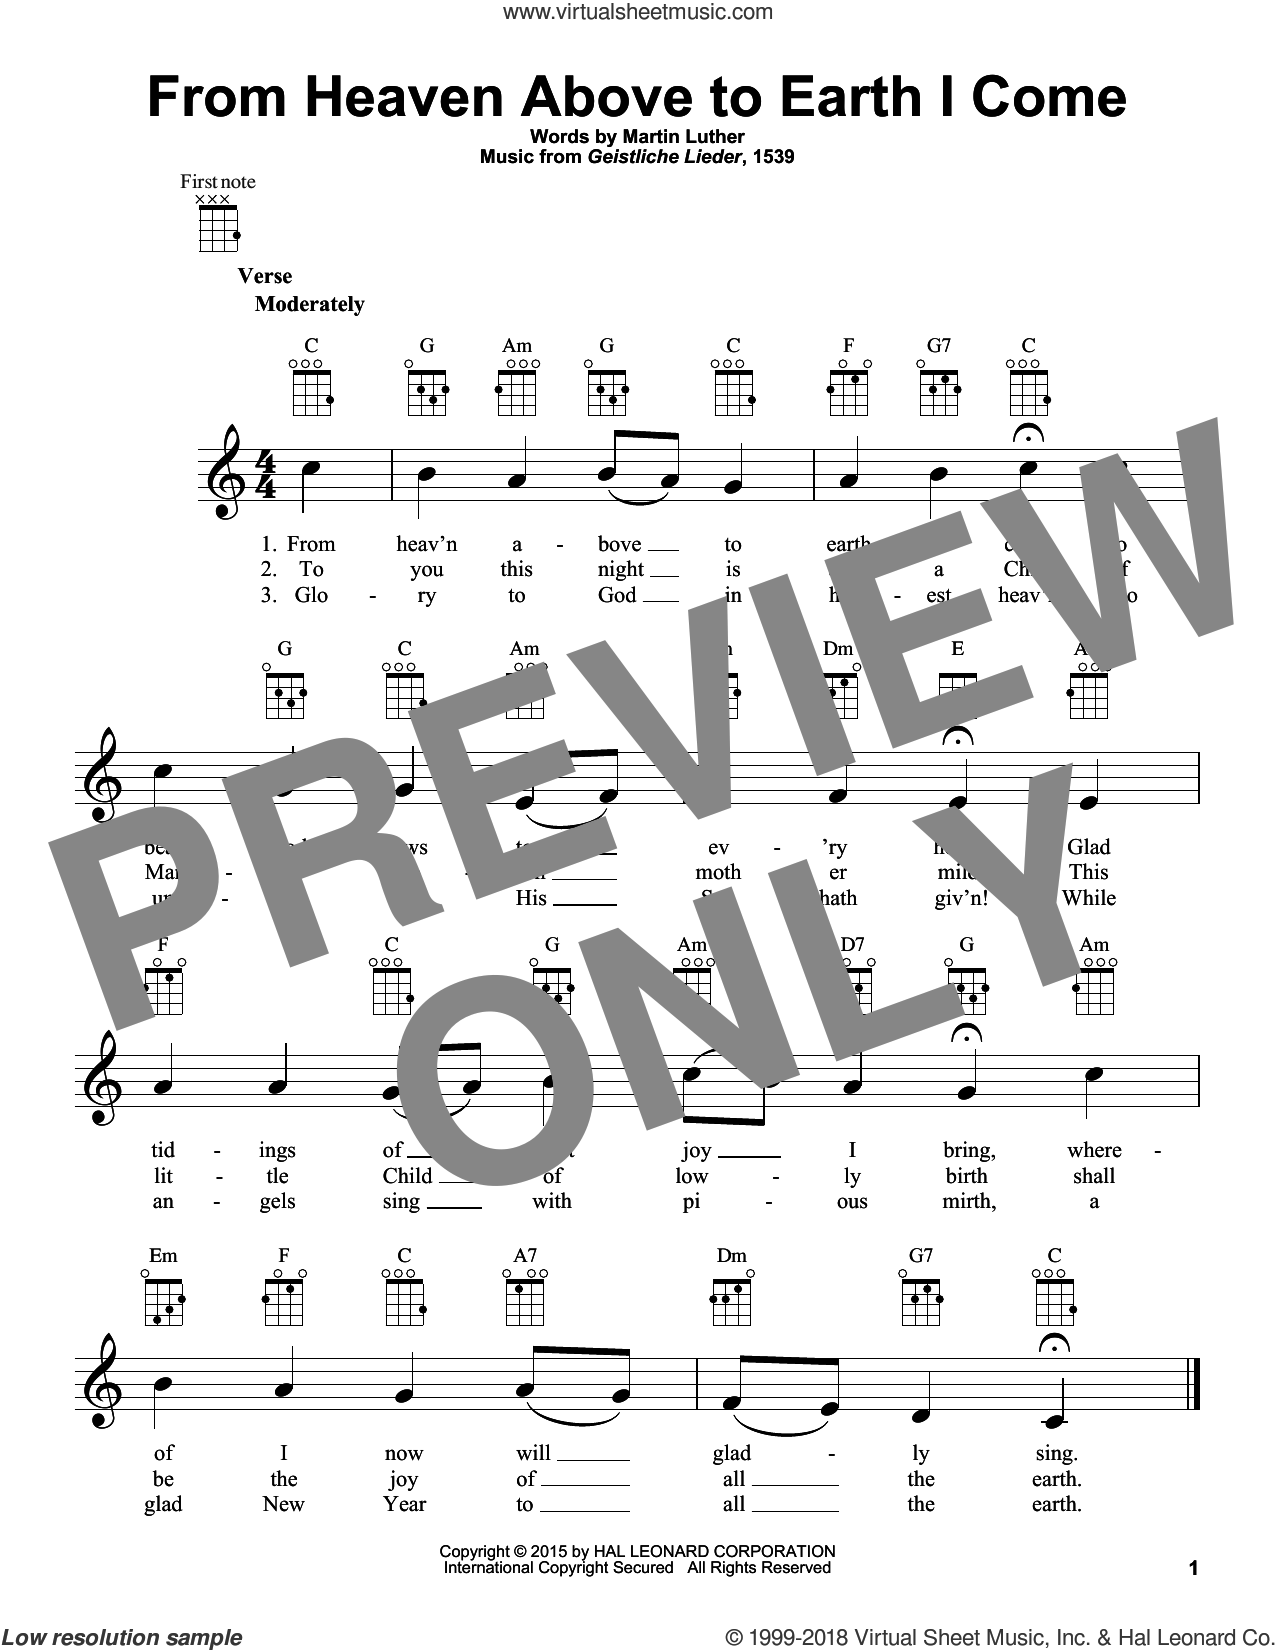 From Heaven Above To Earth I Come sheet music for ukulele by Martin Luther and Geistliche Lieder, intermediate skill level